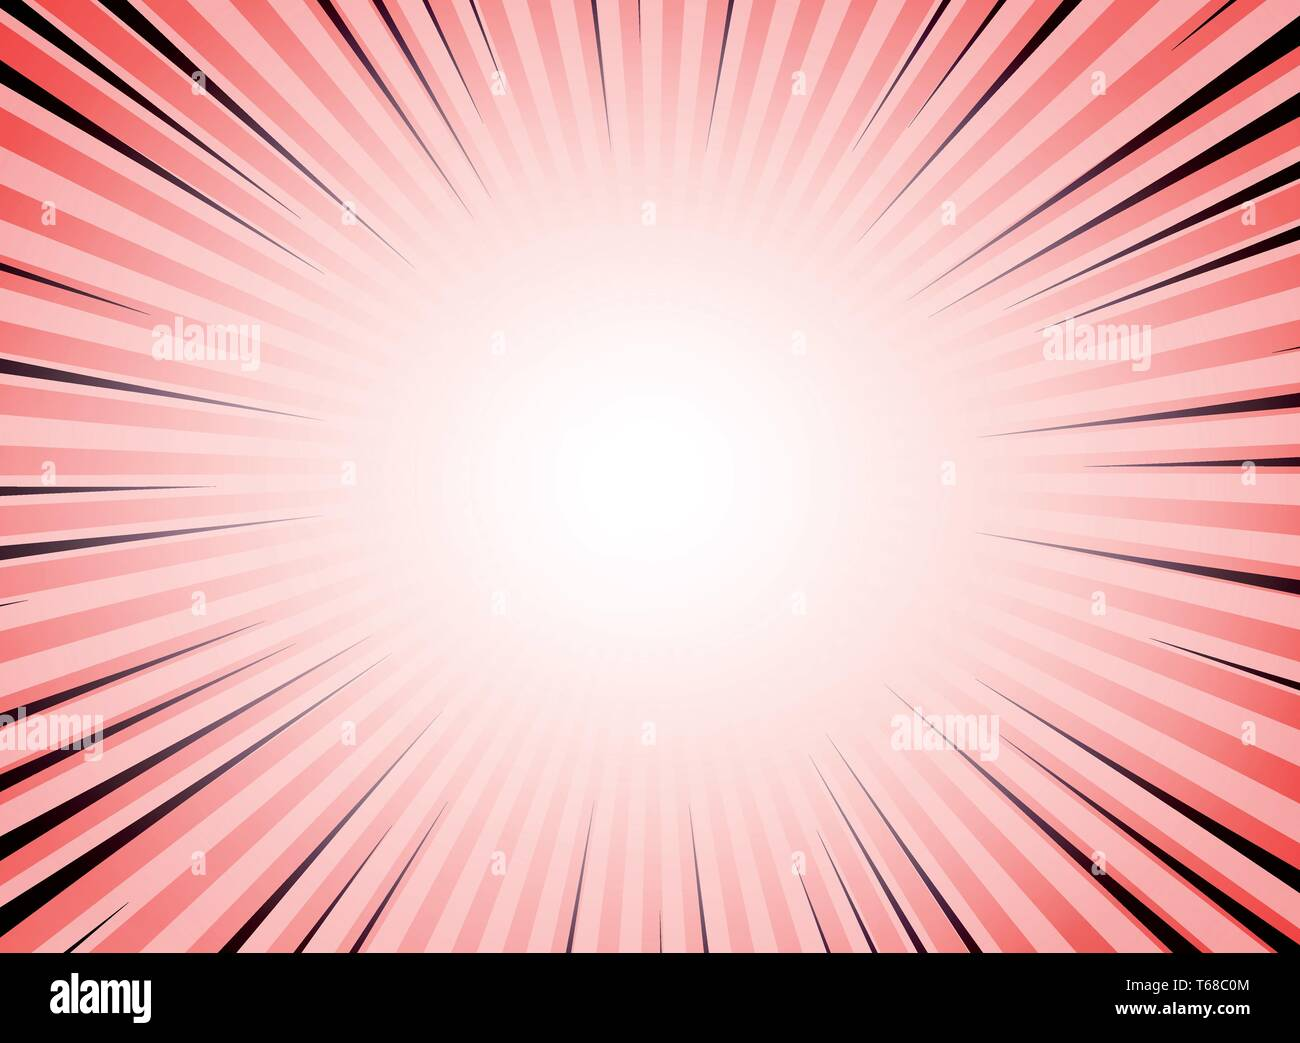 Abstract red living coral color sun burst comic background. You can use for ad, sales, poster, promotion, artwork. illustration vector eps10 - Stock Image